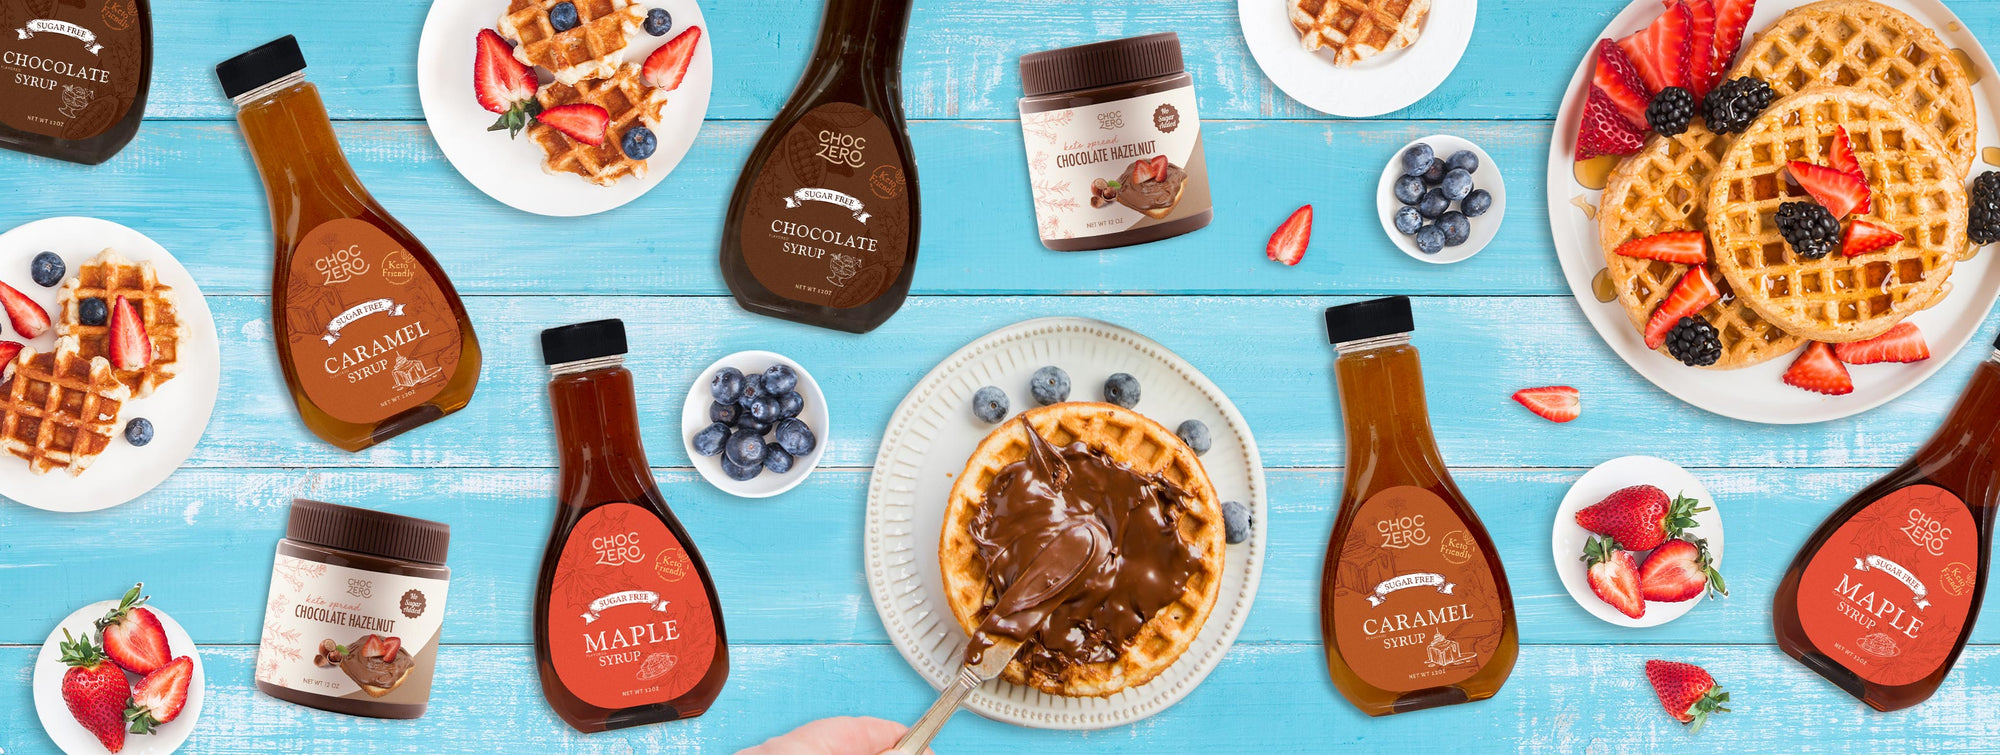 Keto spread and syrups with breakfast waffles